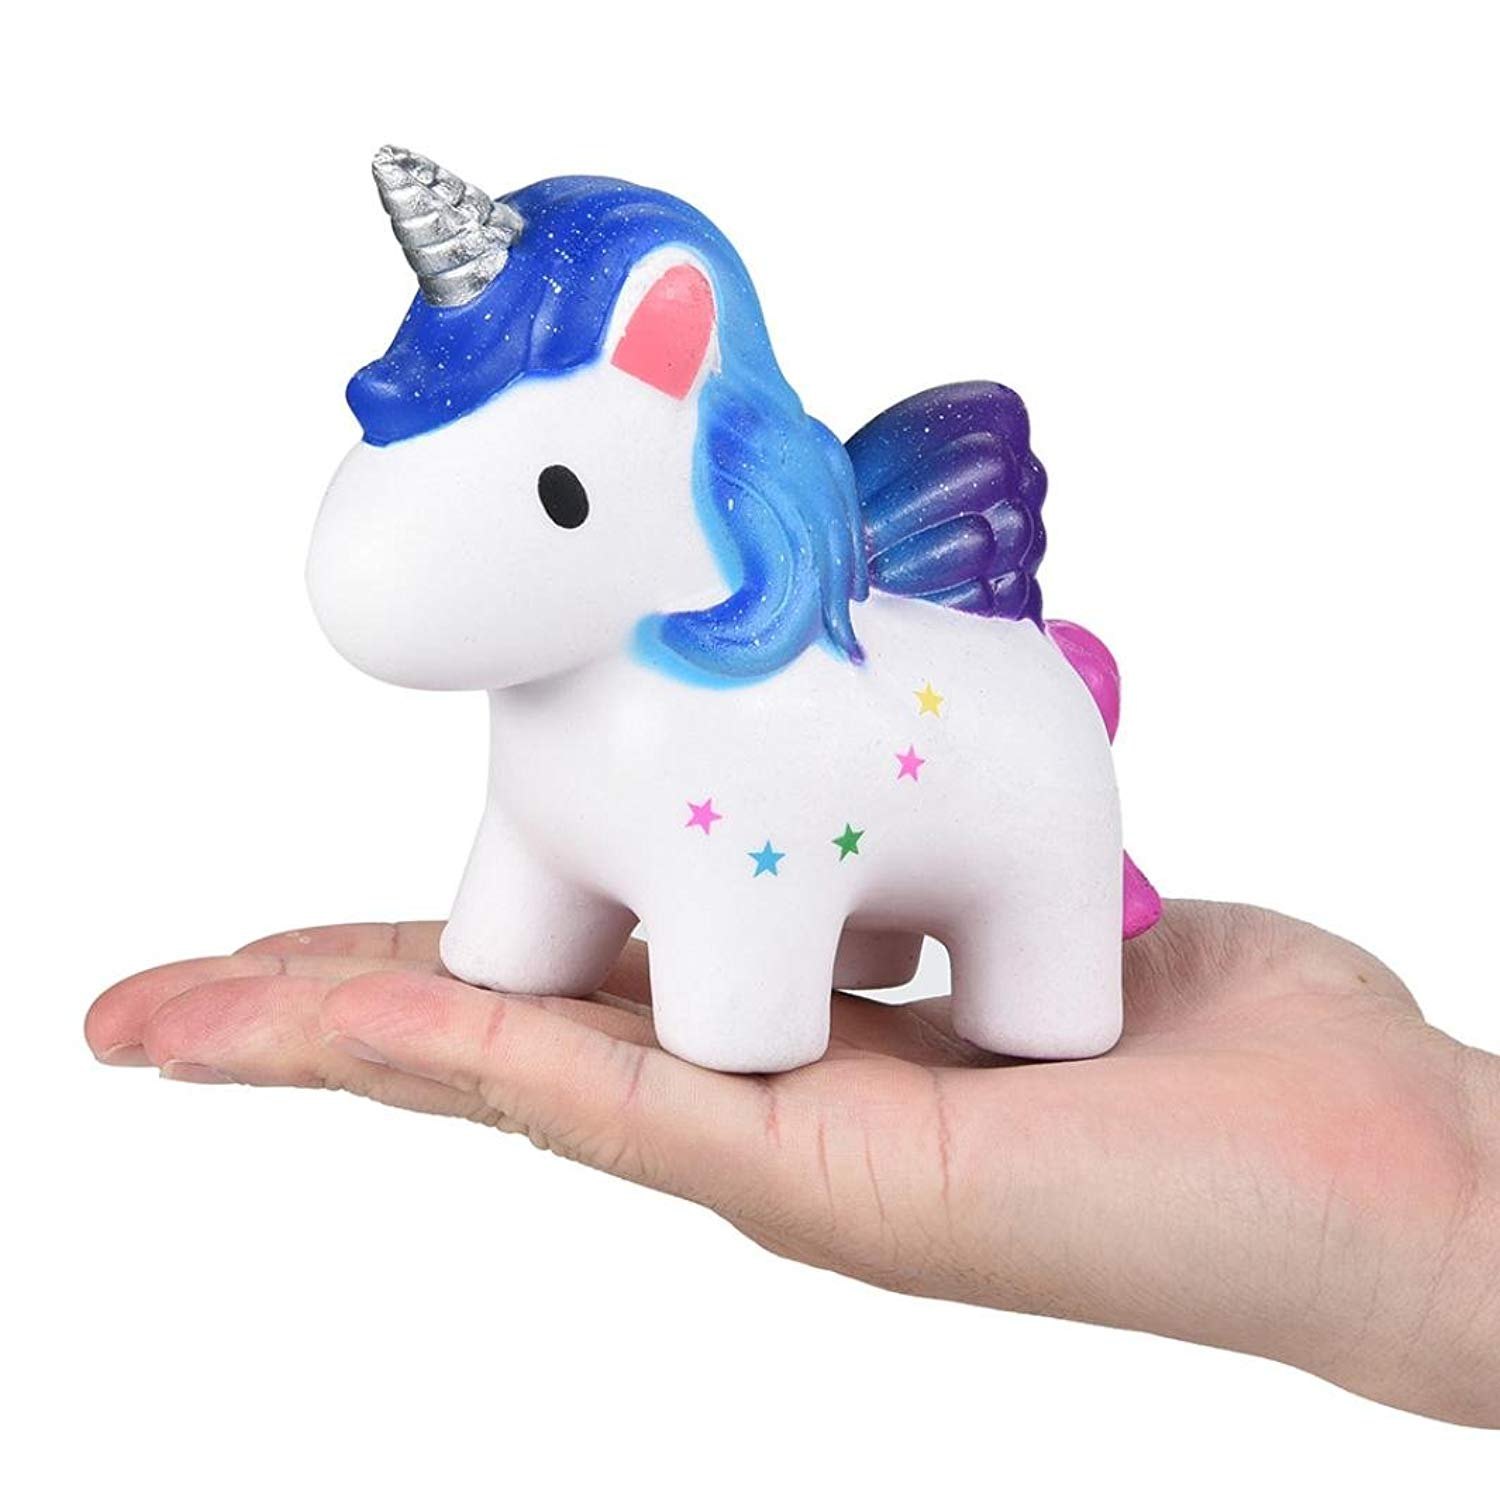 Malbaba Kawaii Jumbo Squishy Star Unicorn Scented Squishy Slow Rising Squeeze Toys Collection Charm Gift for Kids and Adults